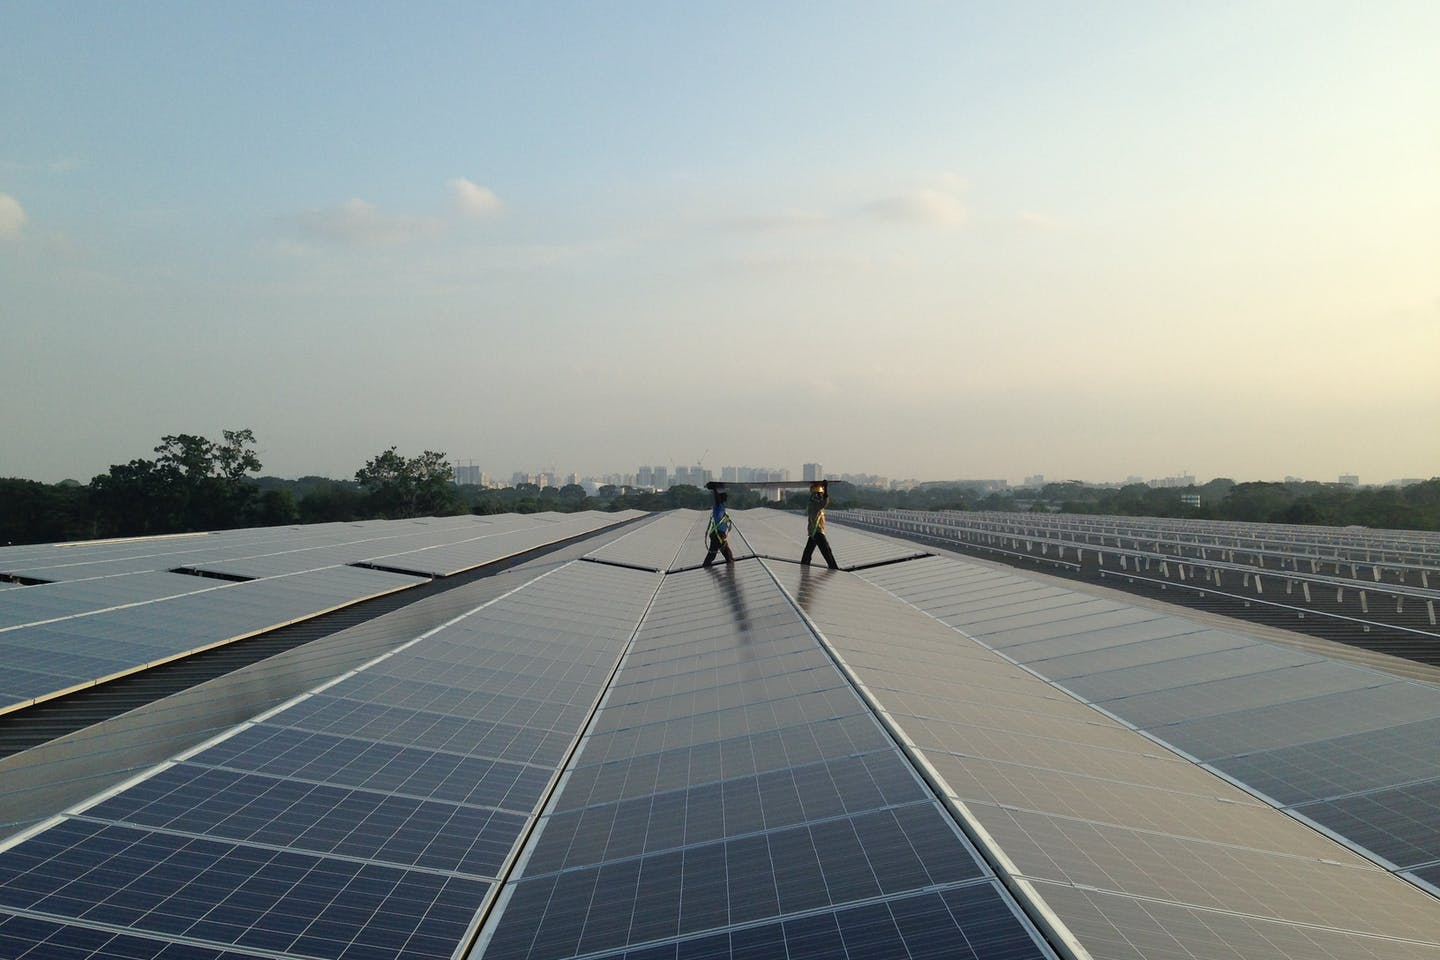 A solar installation in Singapore by LYS Energy Group. Image: LYS Energy